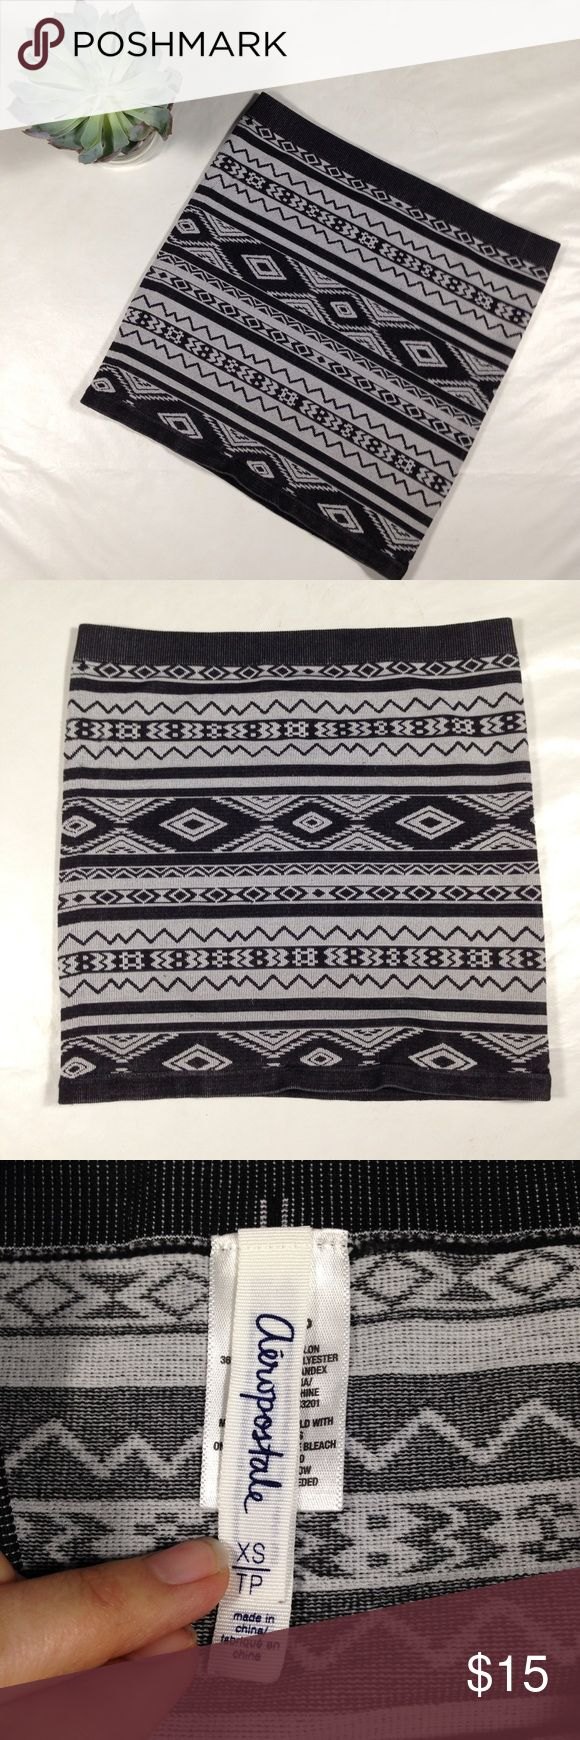 Aeropostale geometric print stretch mini skirt Grey and black mini skirt. Could even be worn as a tube top. Excellent condition! Aeropostale Skirts Mini